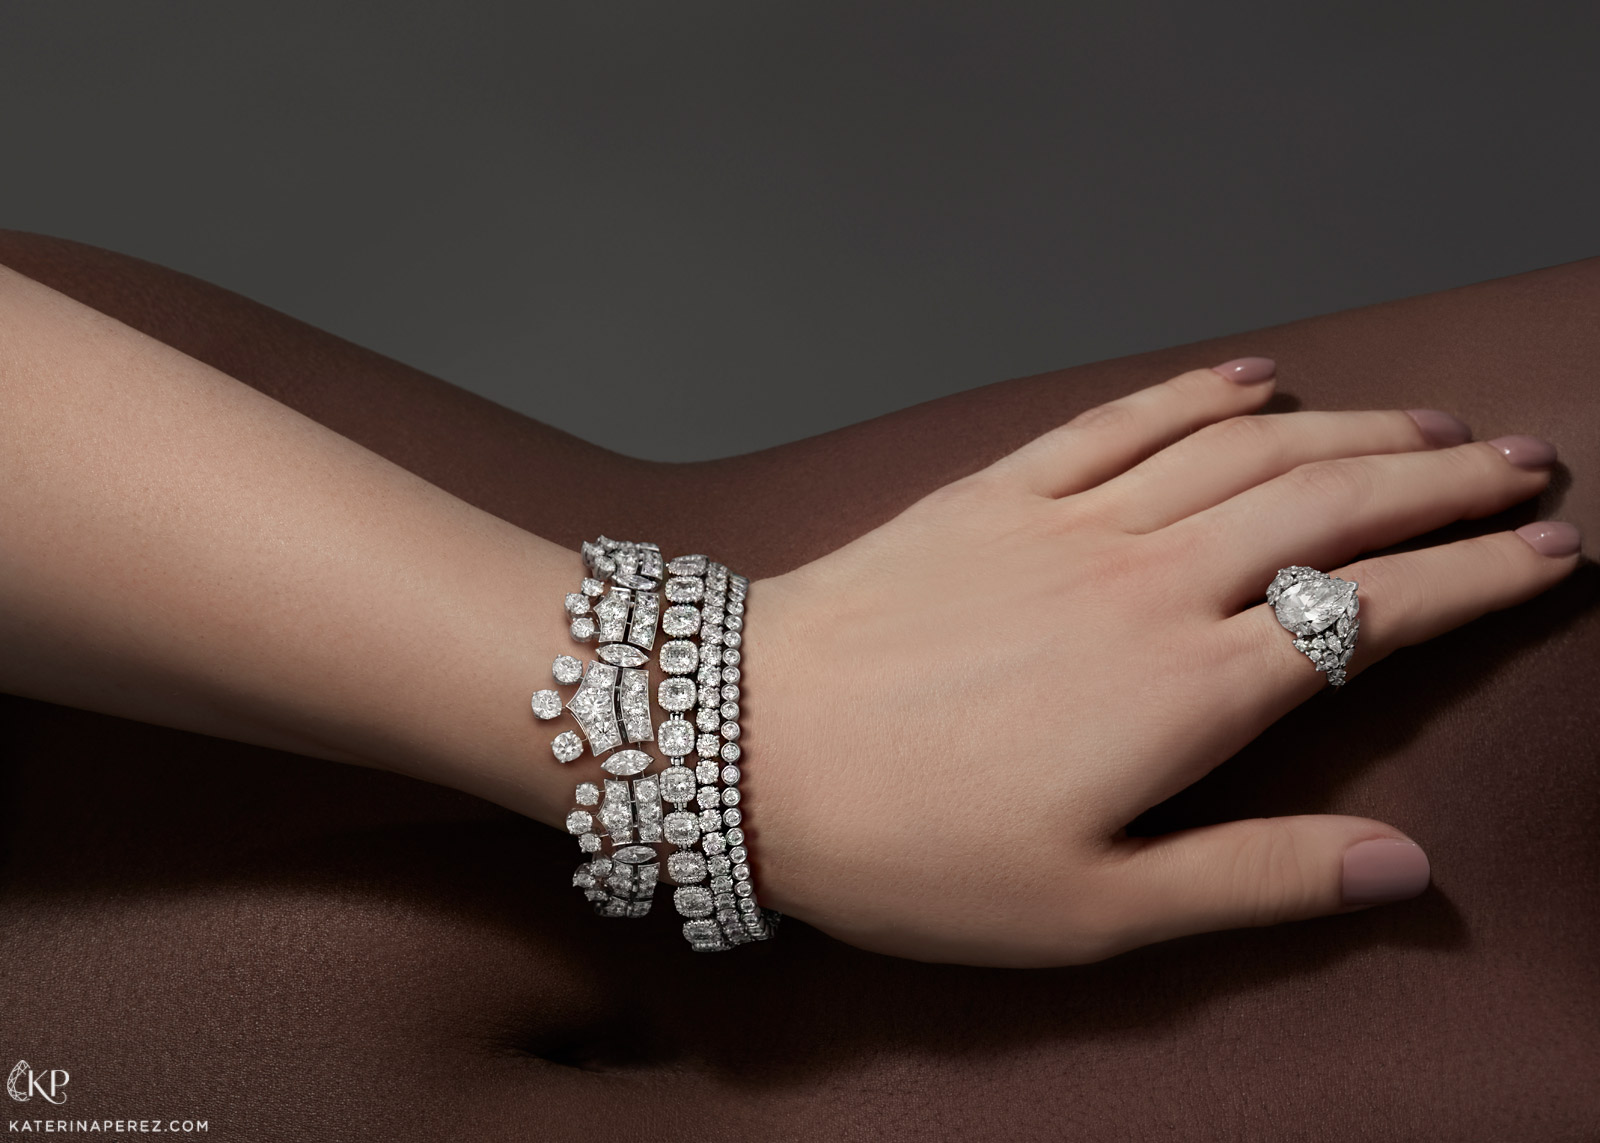 From left to right: De Beers 'Phenomena', 'Aura' and 'Classic Lines' bracelets with diamonds and 'London' ring from the 'Thames Path' collection with pear cut feature diamond and accenting diamonds